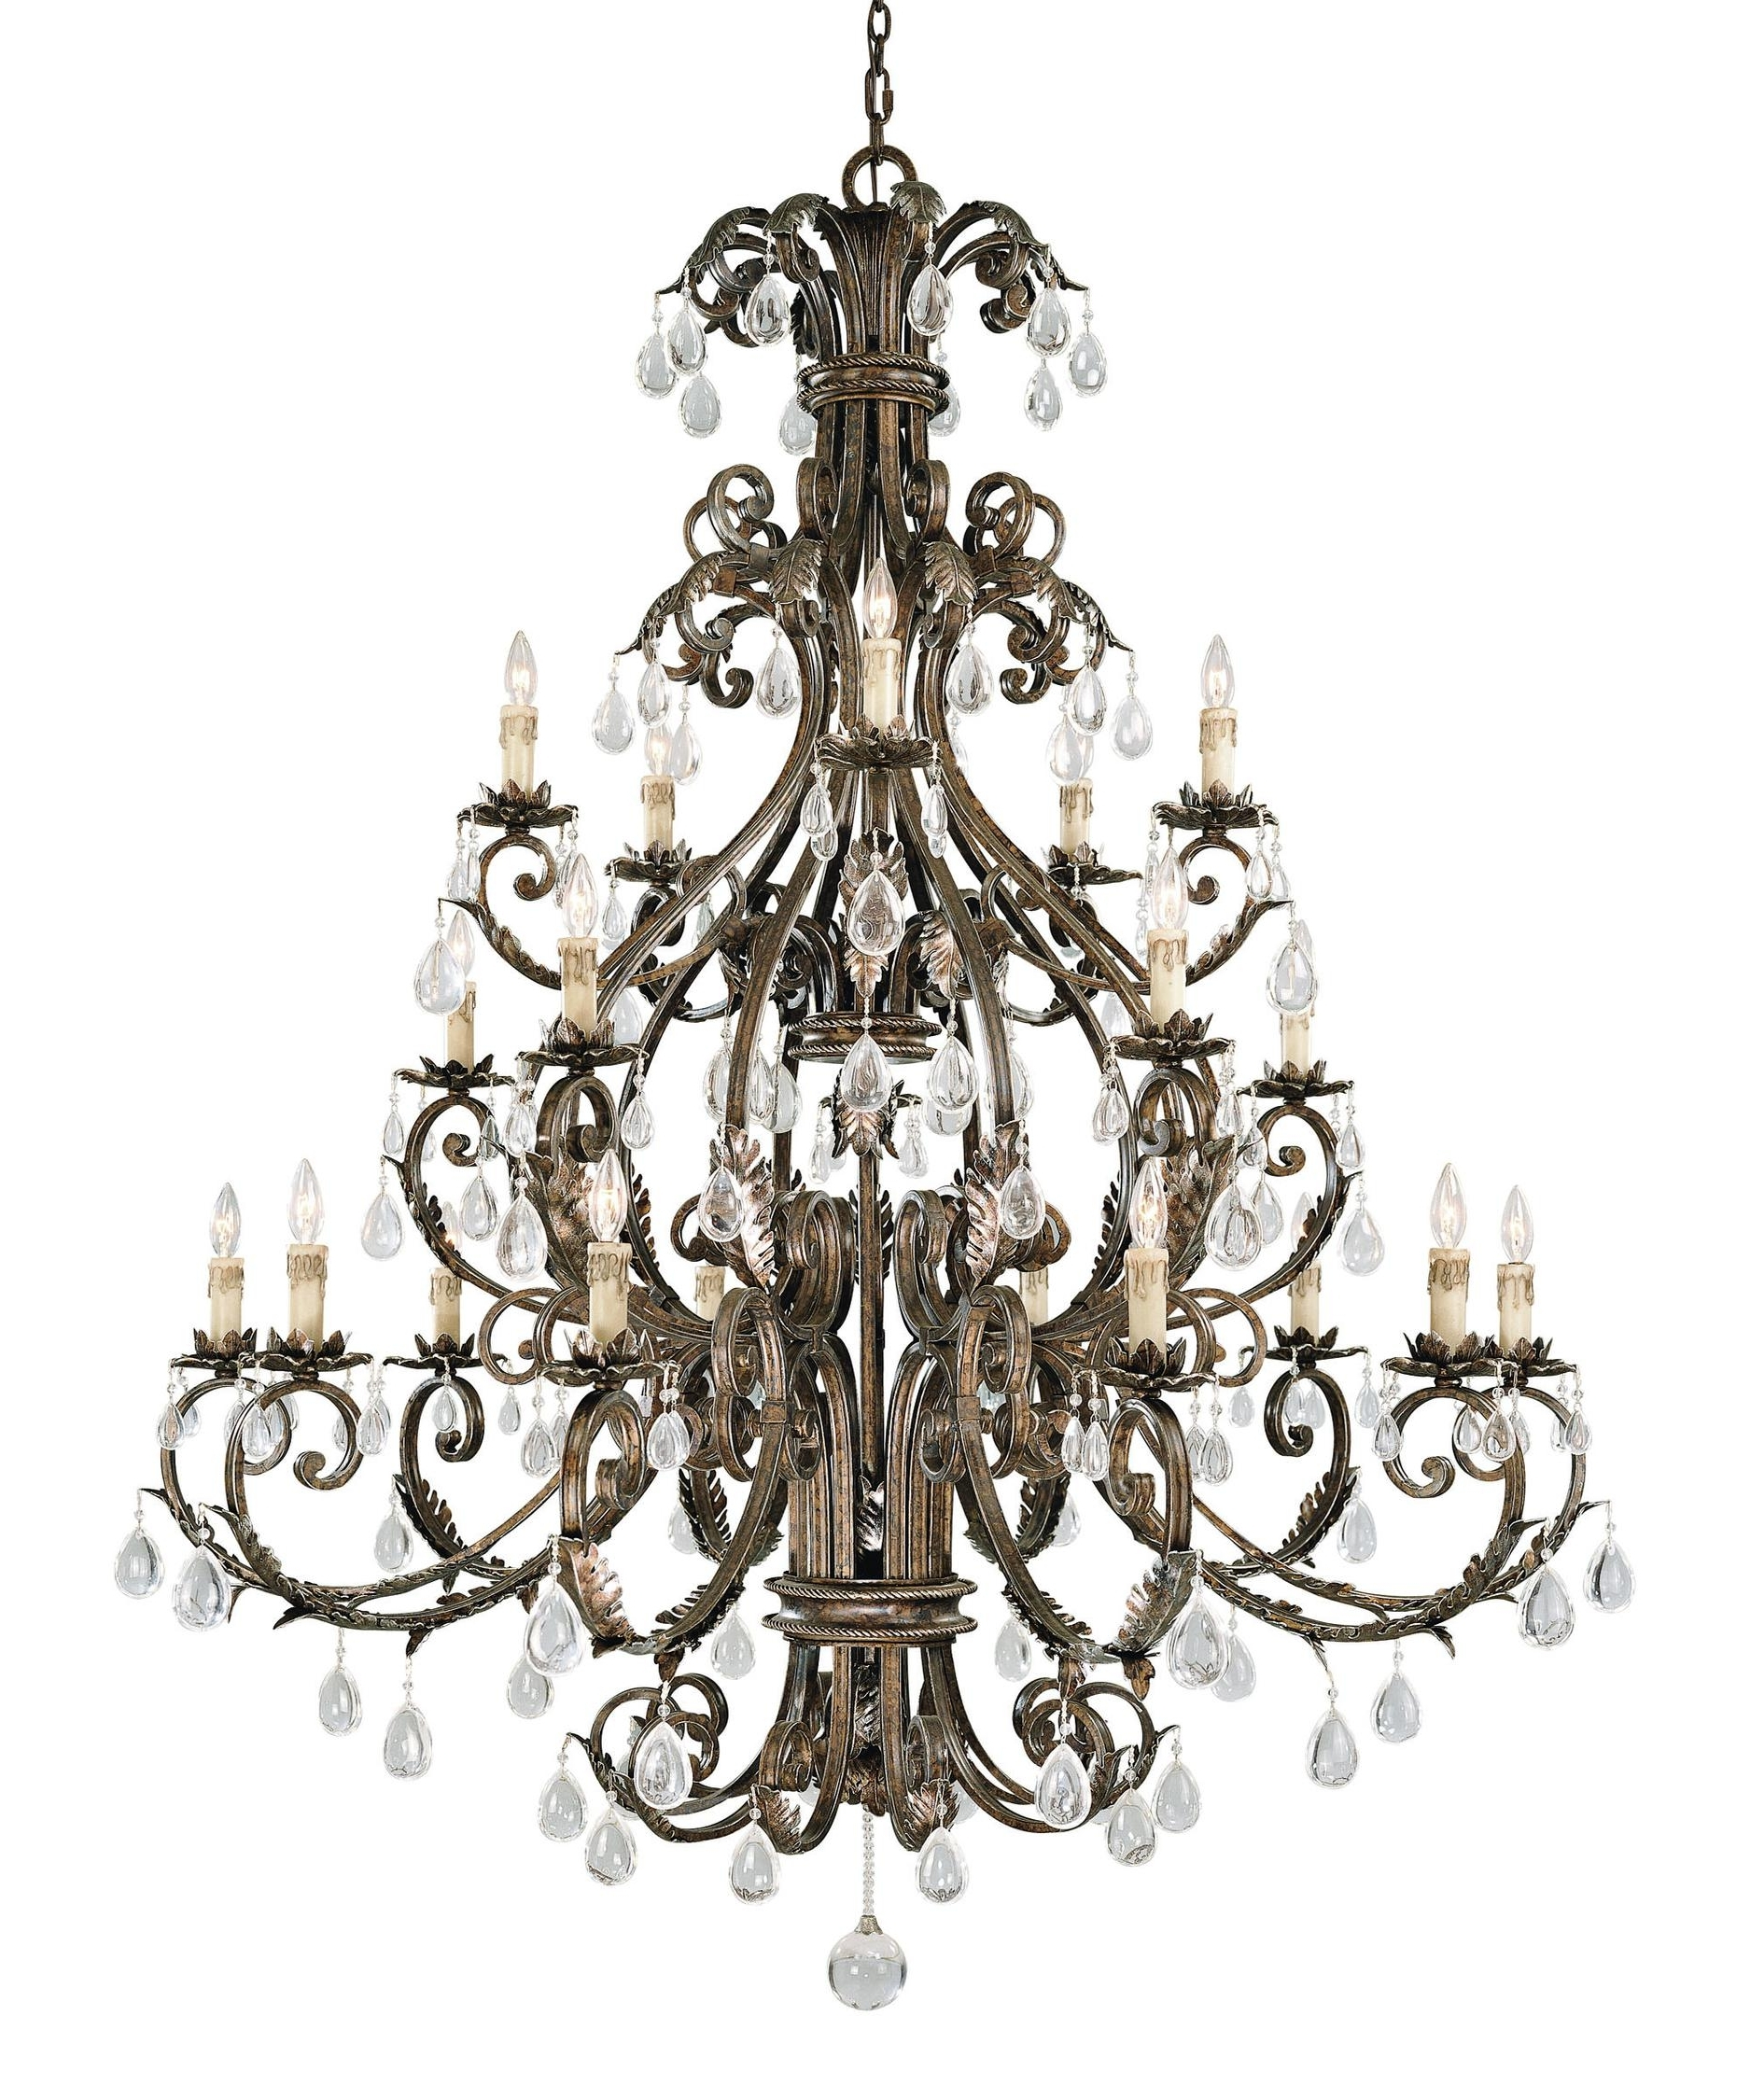 Most Popular Savoy House 1 5309 20 8 Chastain 57 Inch Wide 20 Light Chandelier For Savoy House Chandeliers (View 8 of 20)